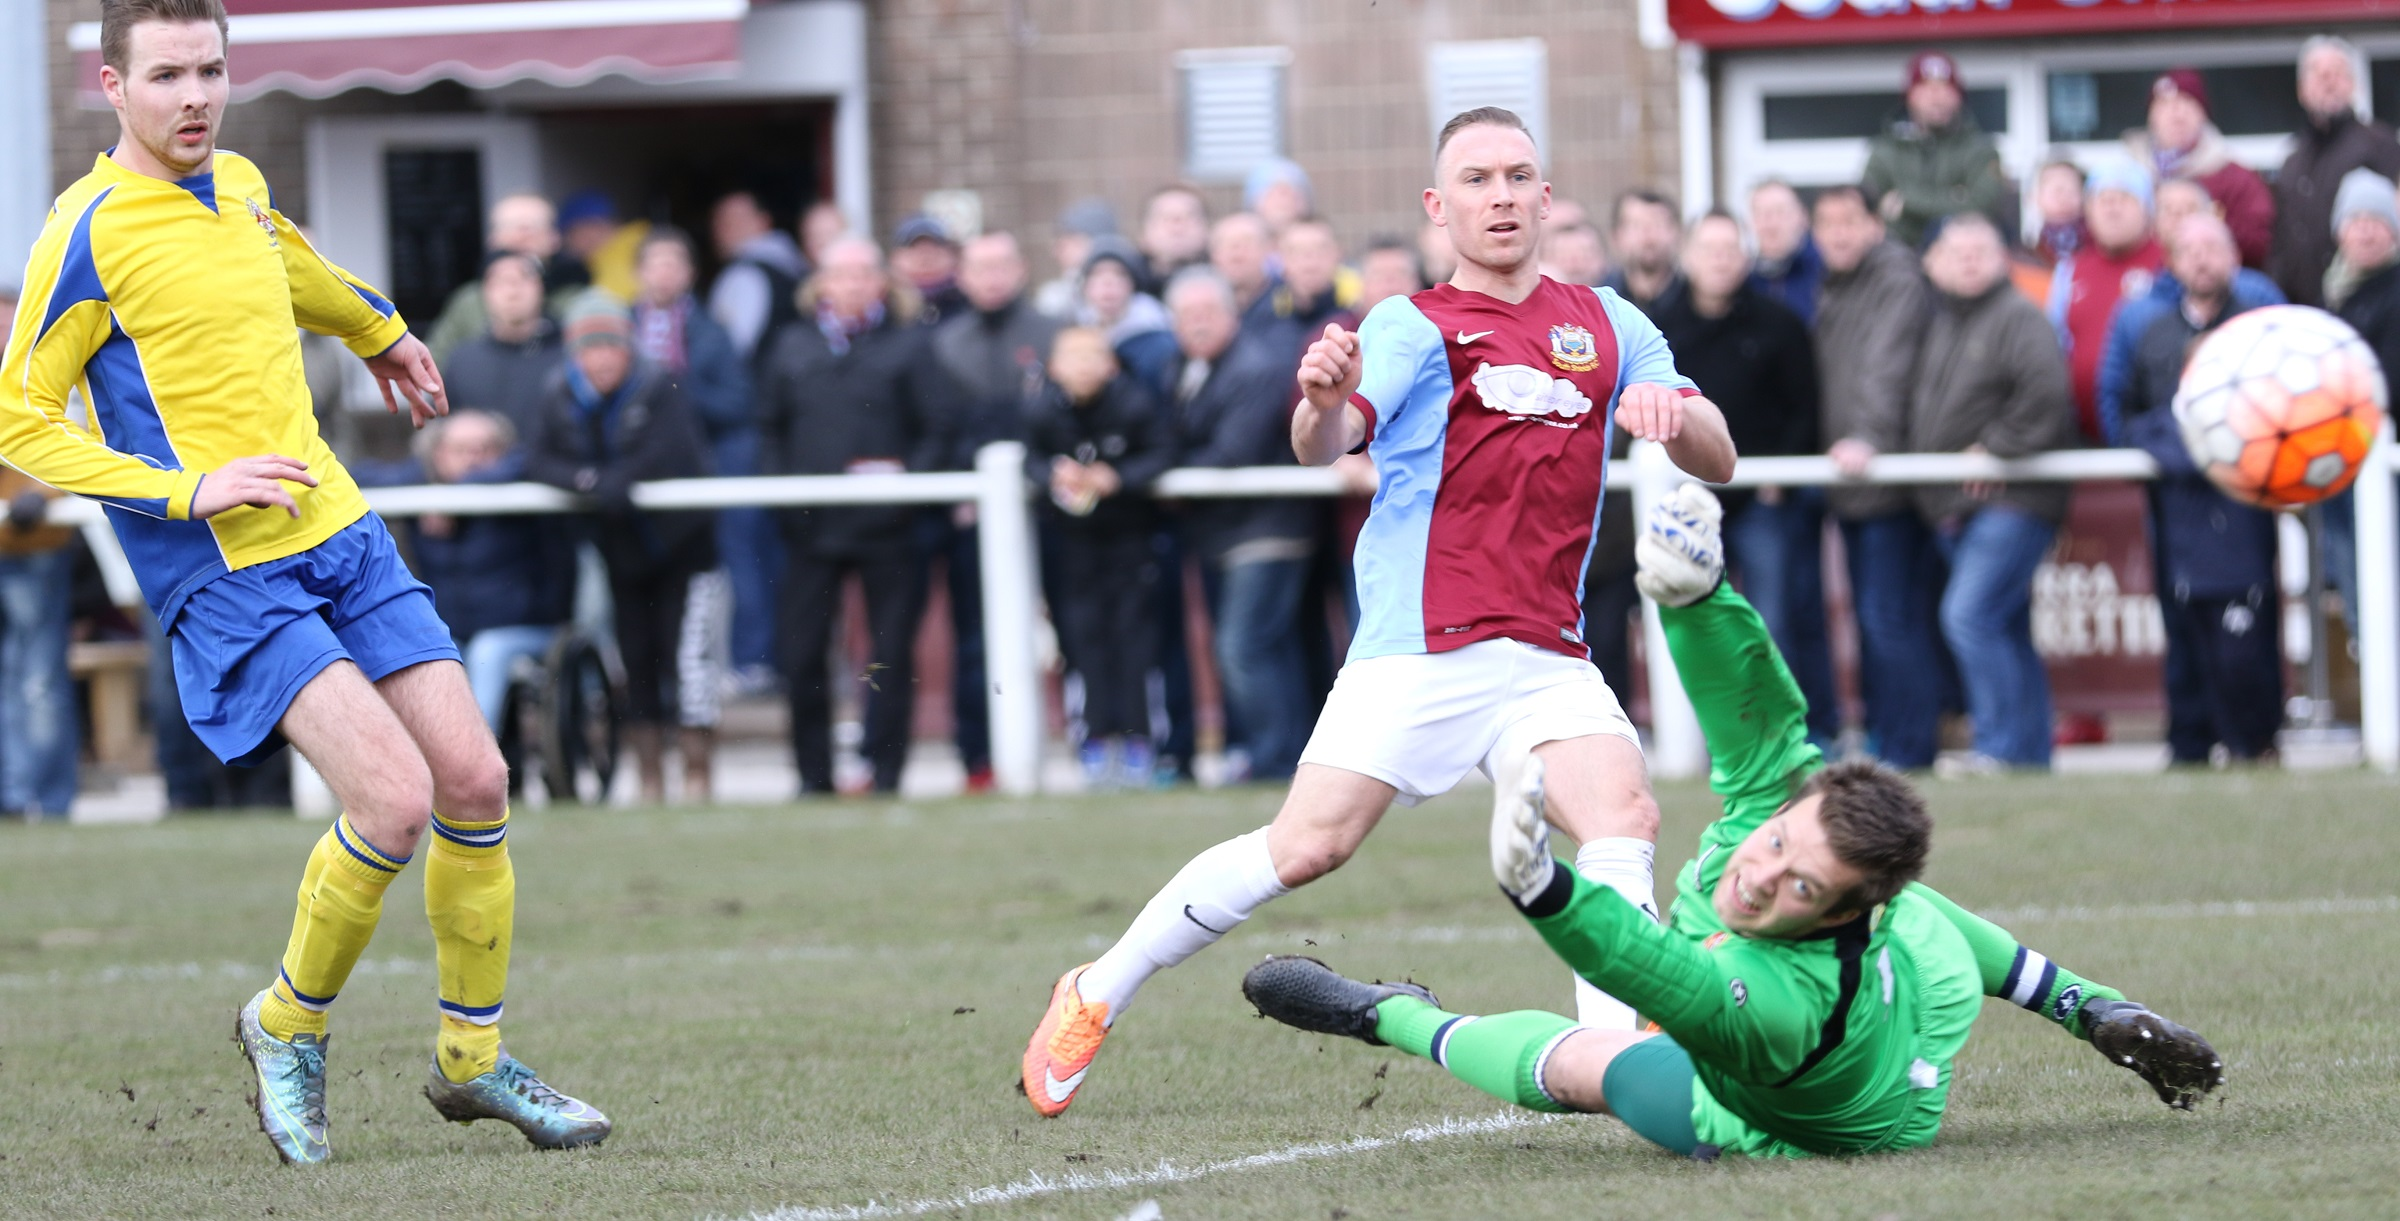 South Shields 2-0 Chester-le-Street